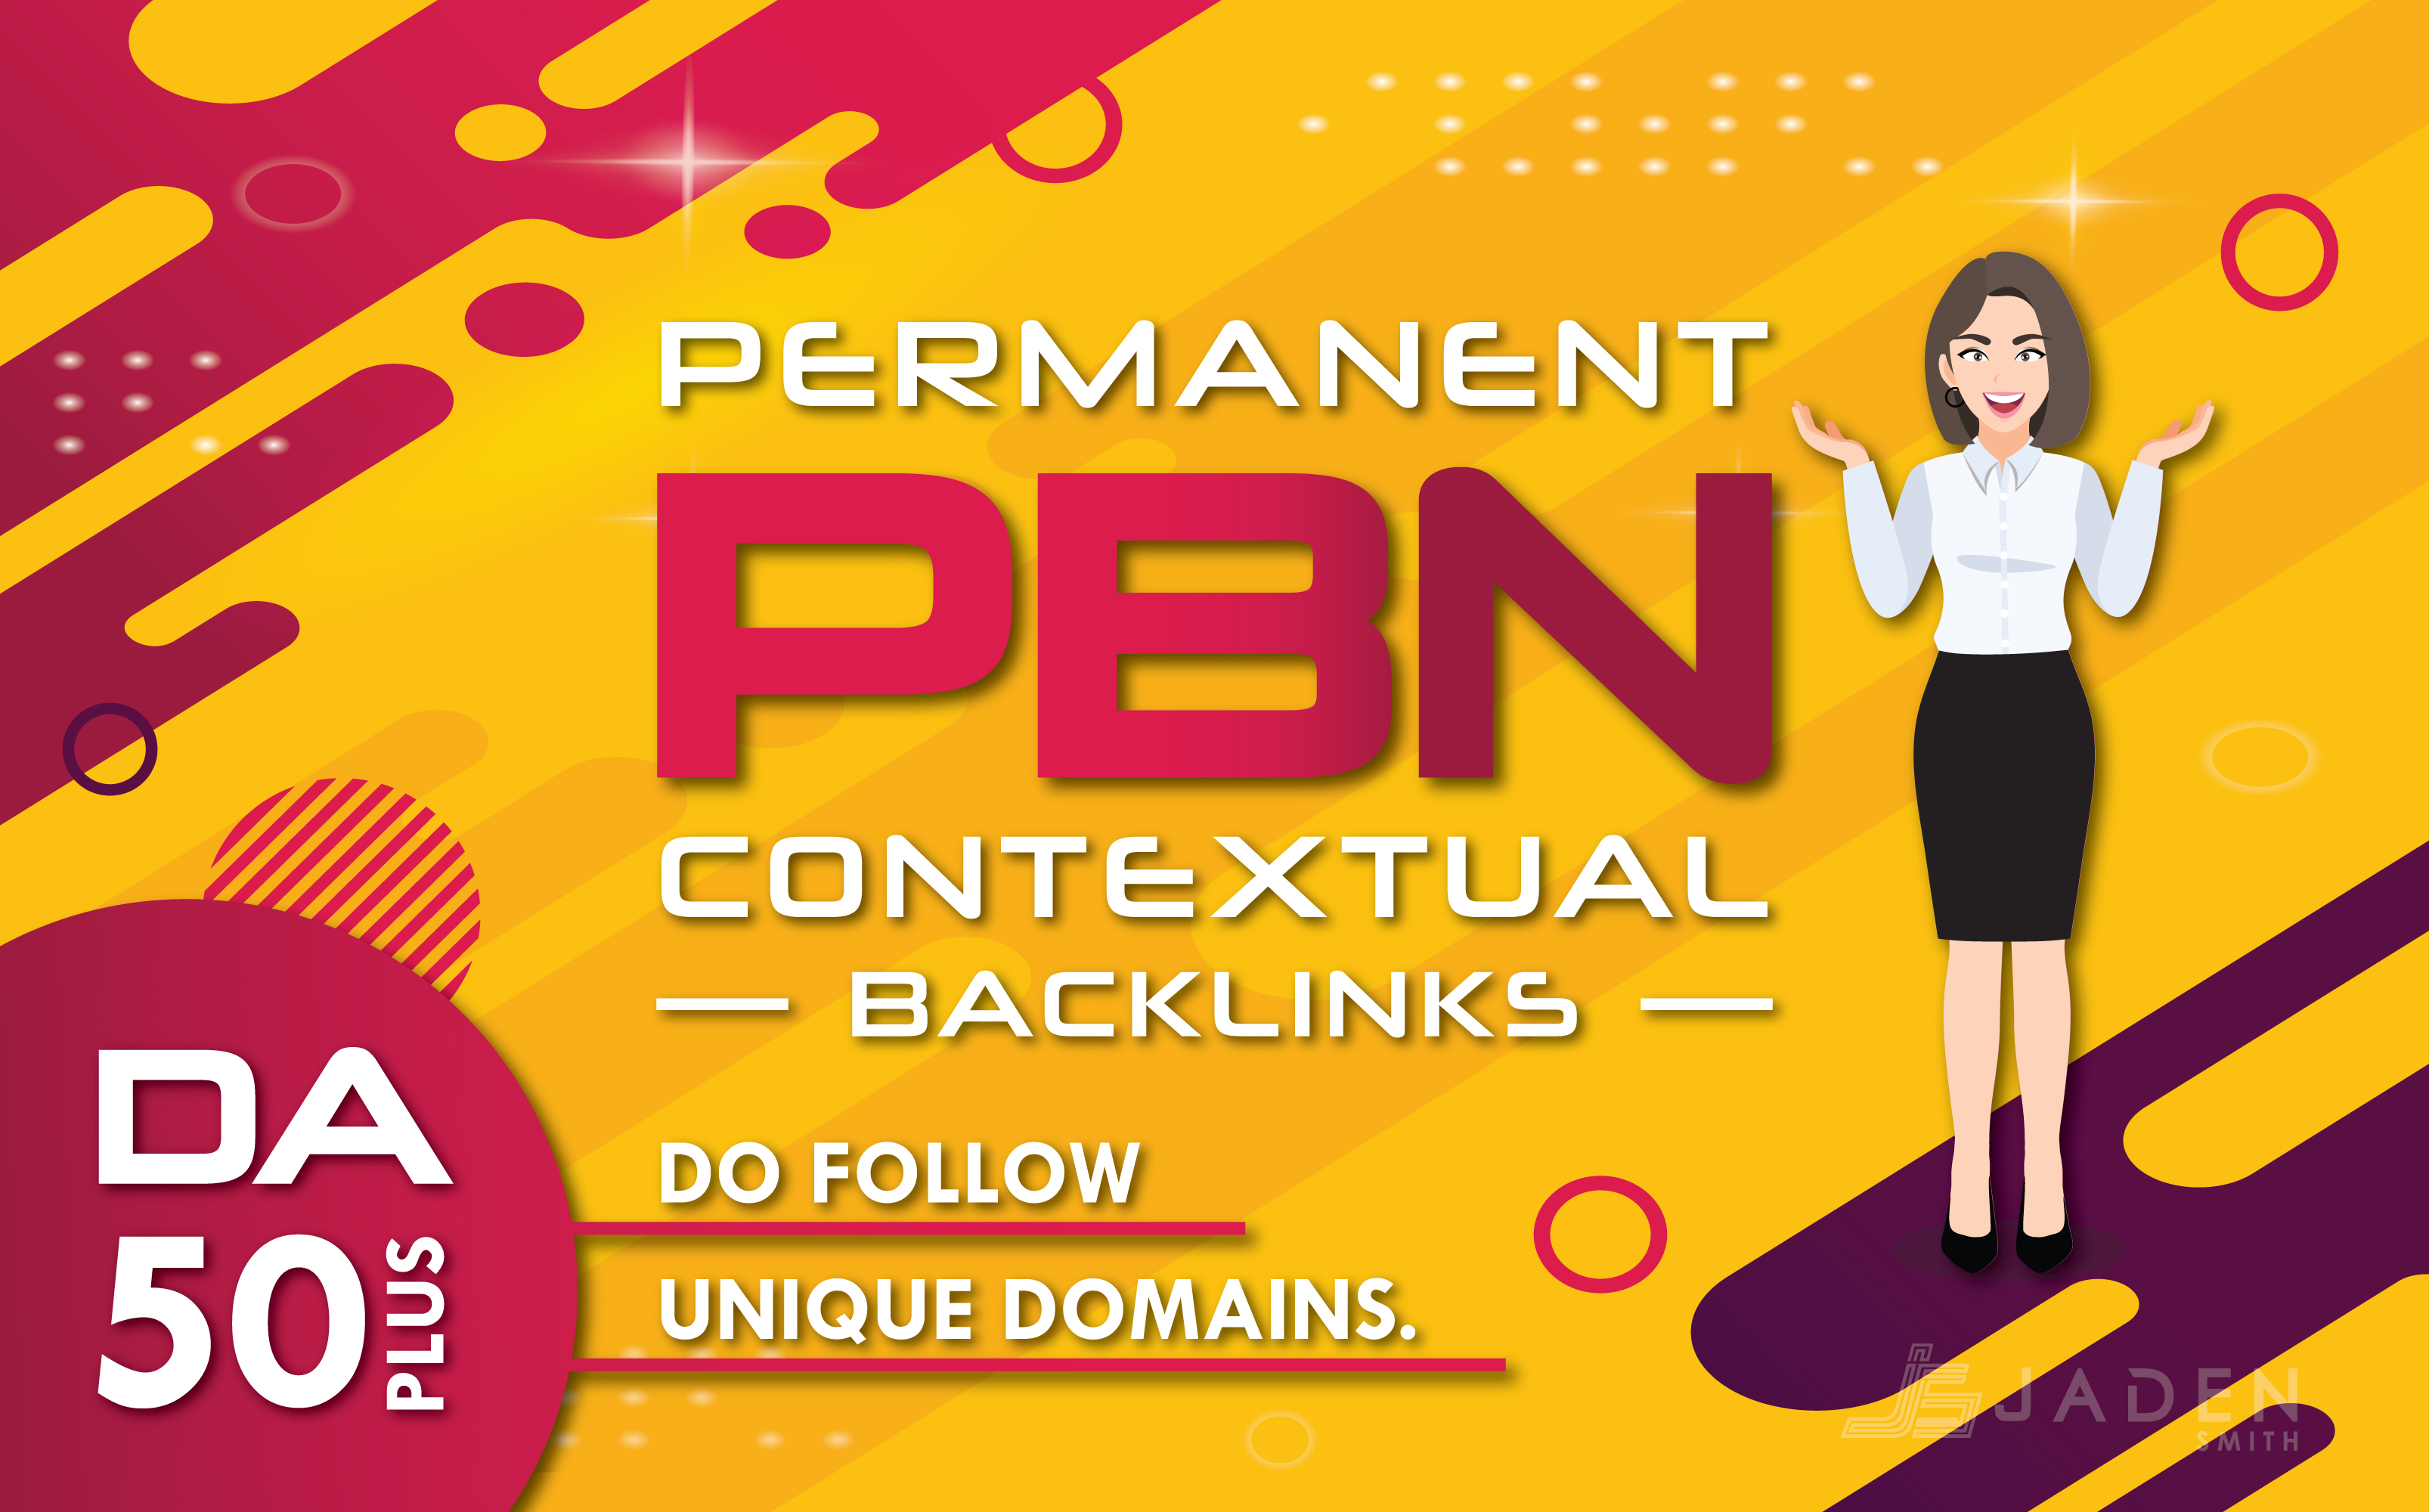 RANK Your Site With 30 PBN backlinks on 50 Plus DA